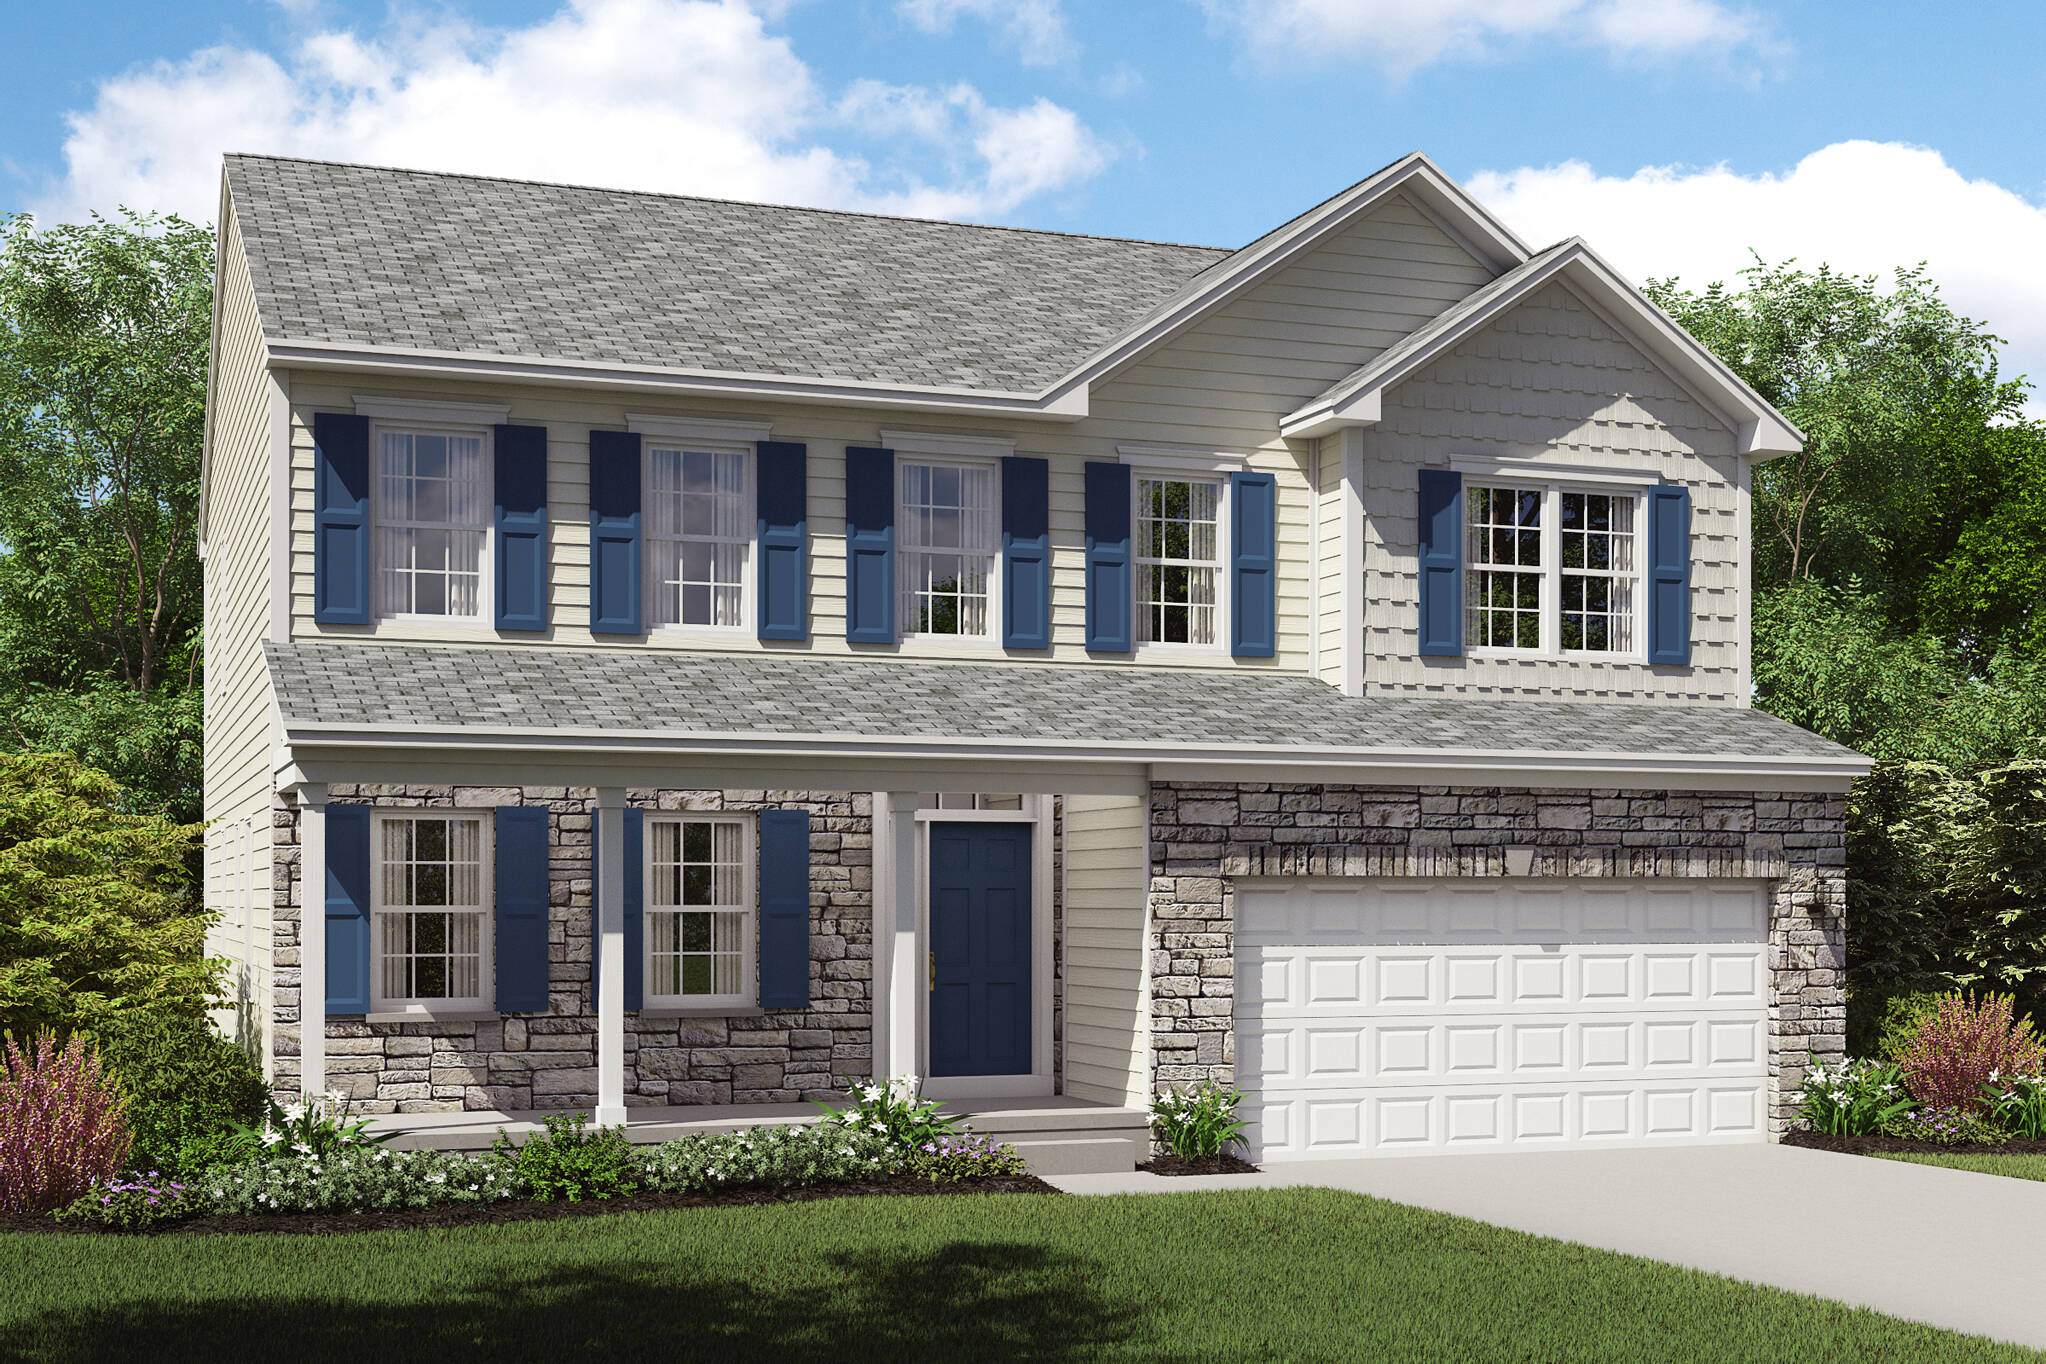 stone exterior upscale new home brantwood cleveland ohio